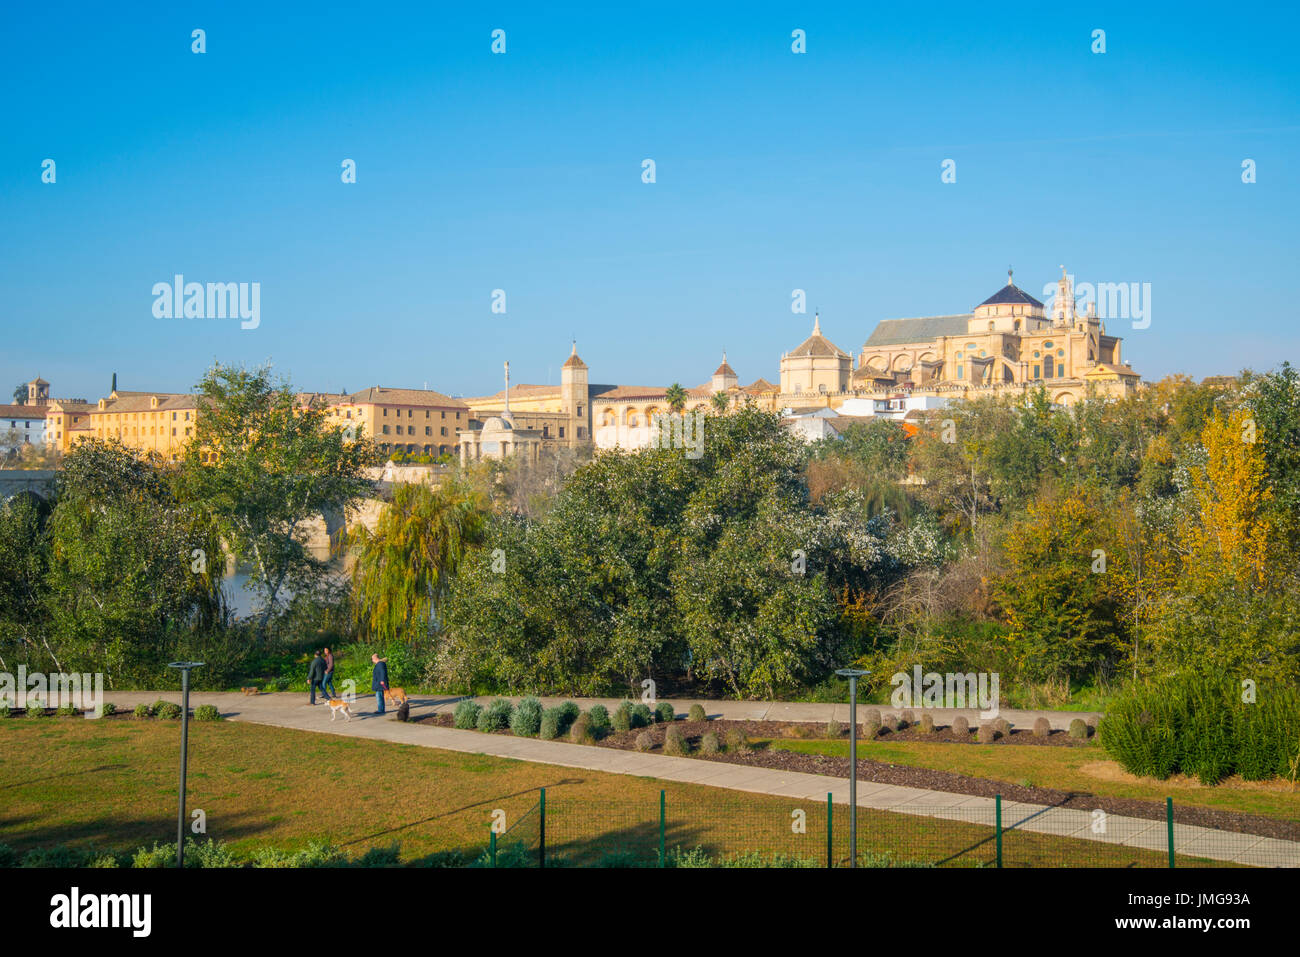 Overview of the old town from the bank of river Guadalquivir. Cordoba, Spain. - Stock Image